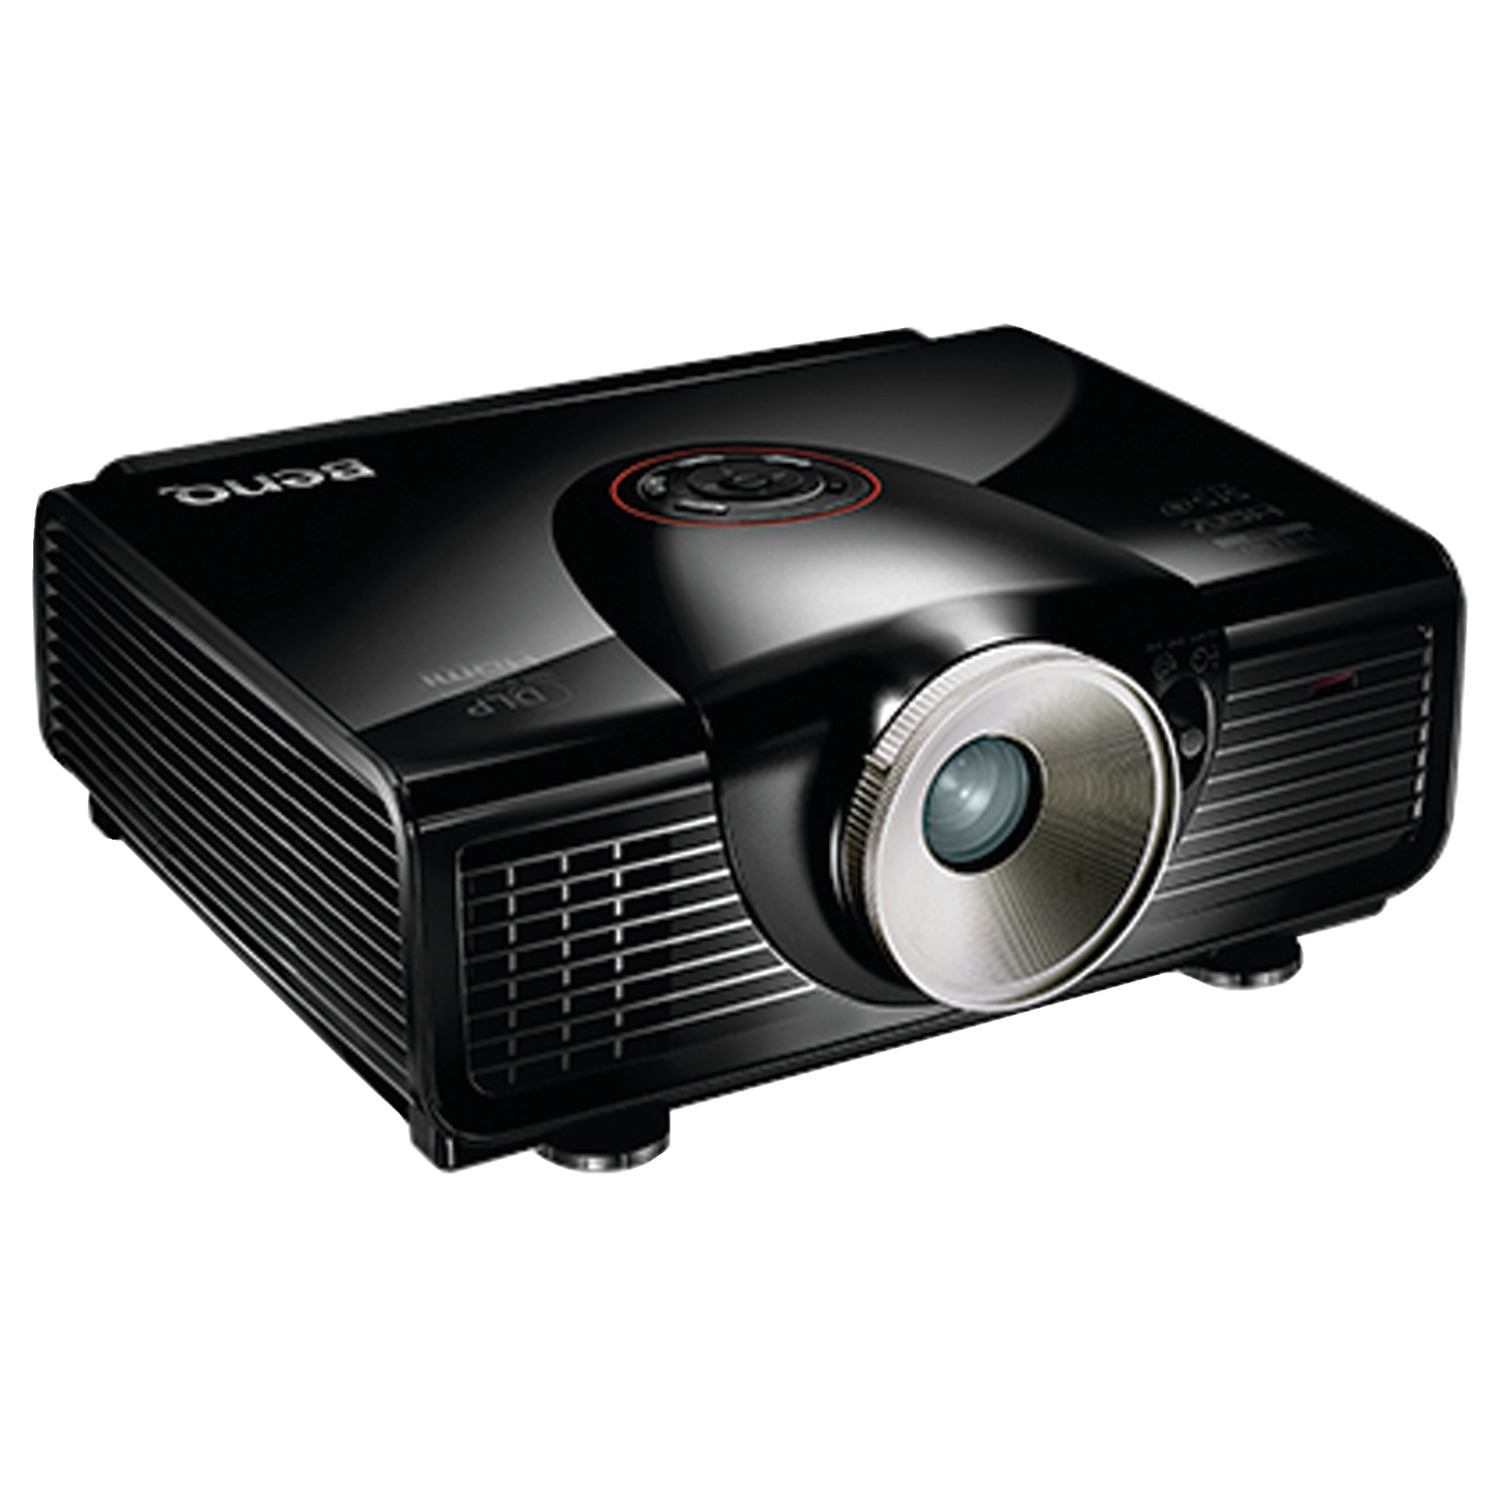 Benq sh940 1080p full hd dlp r projector for Hd projector reviews